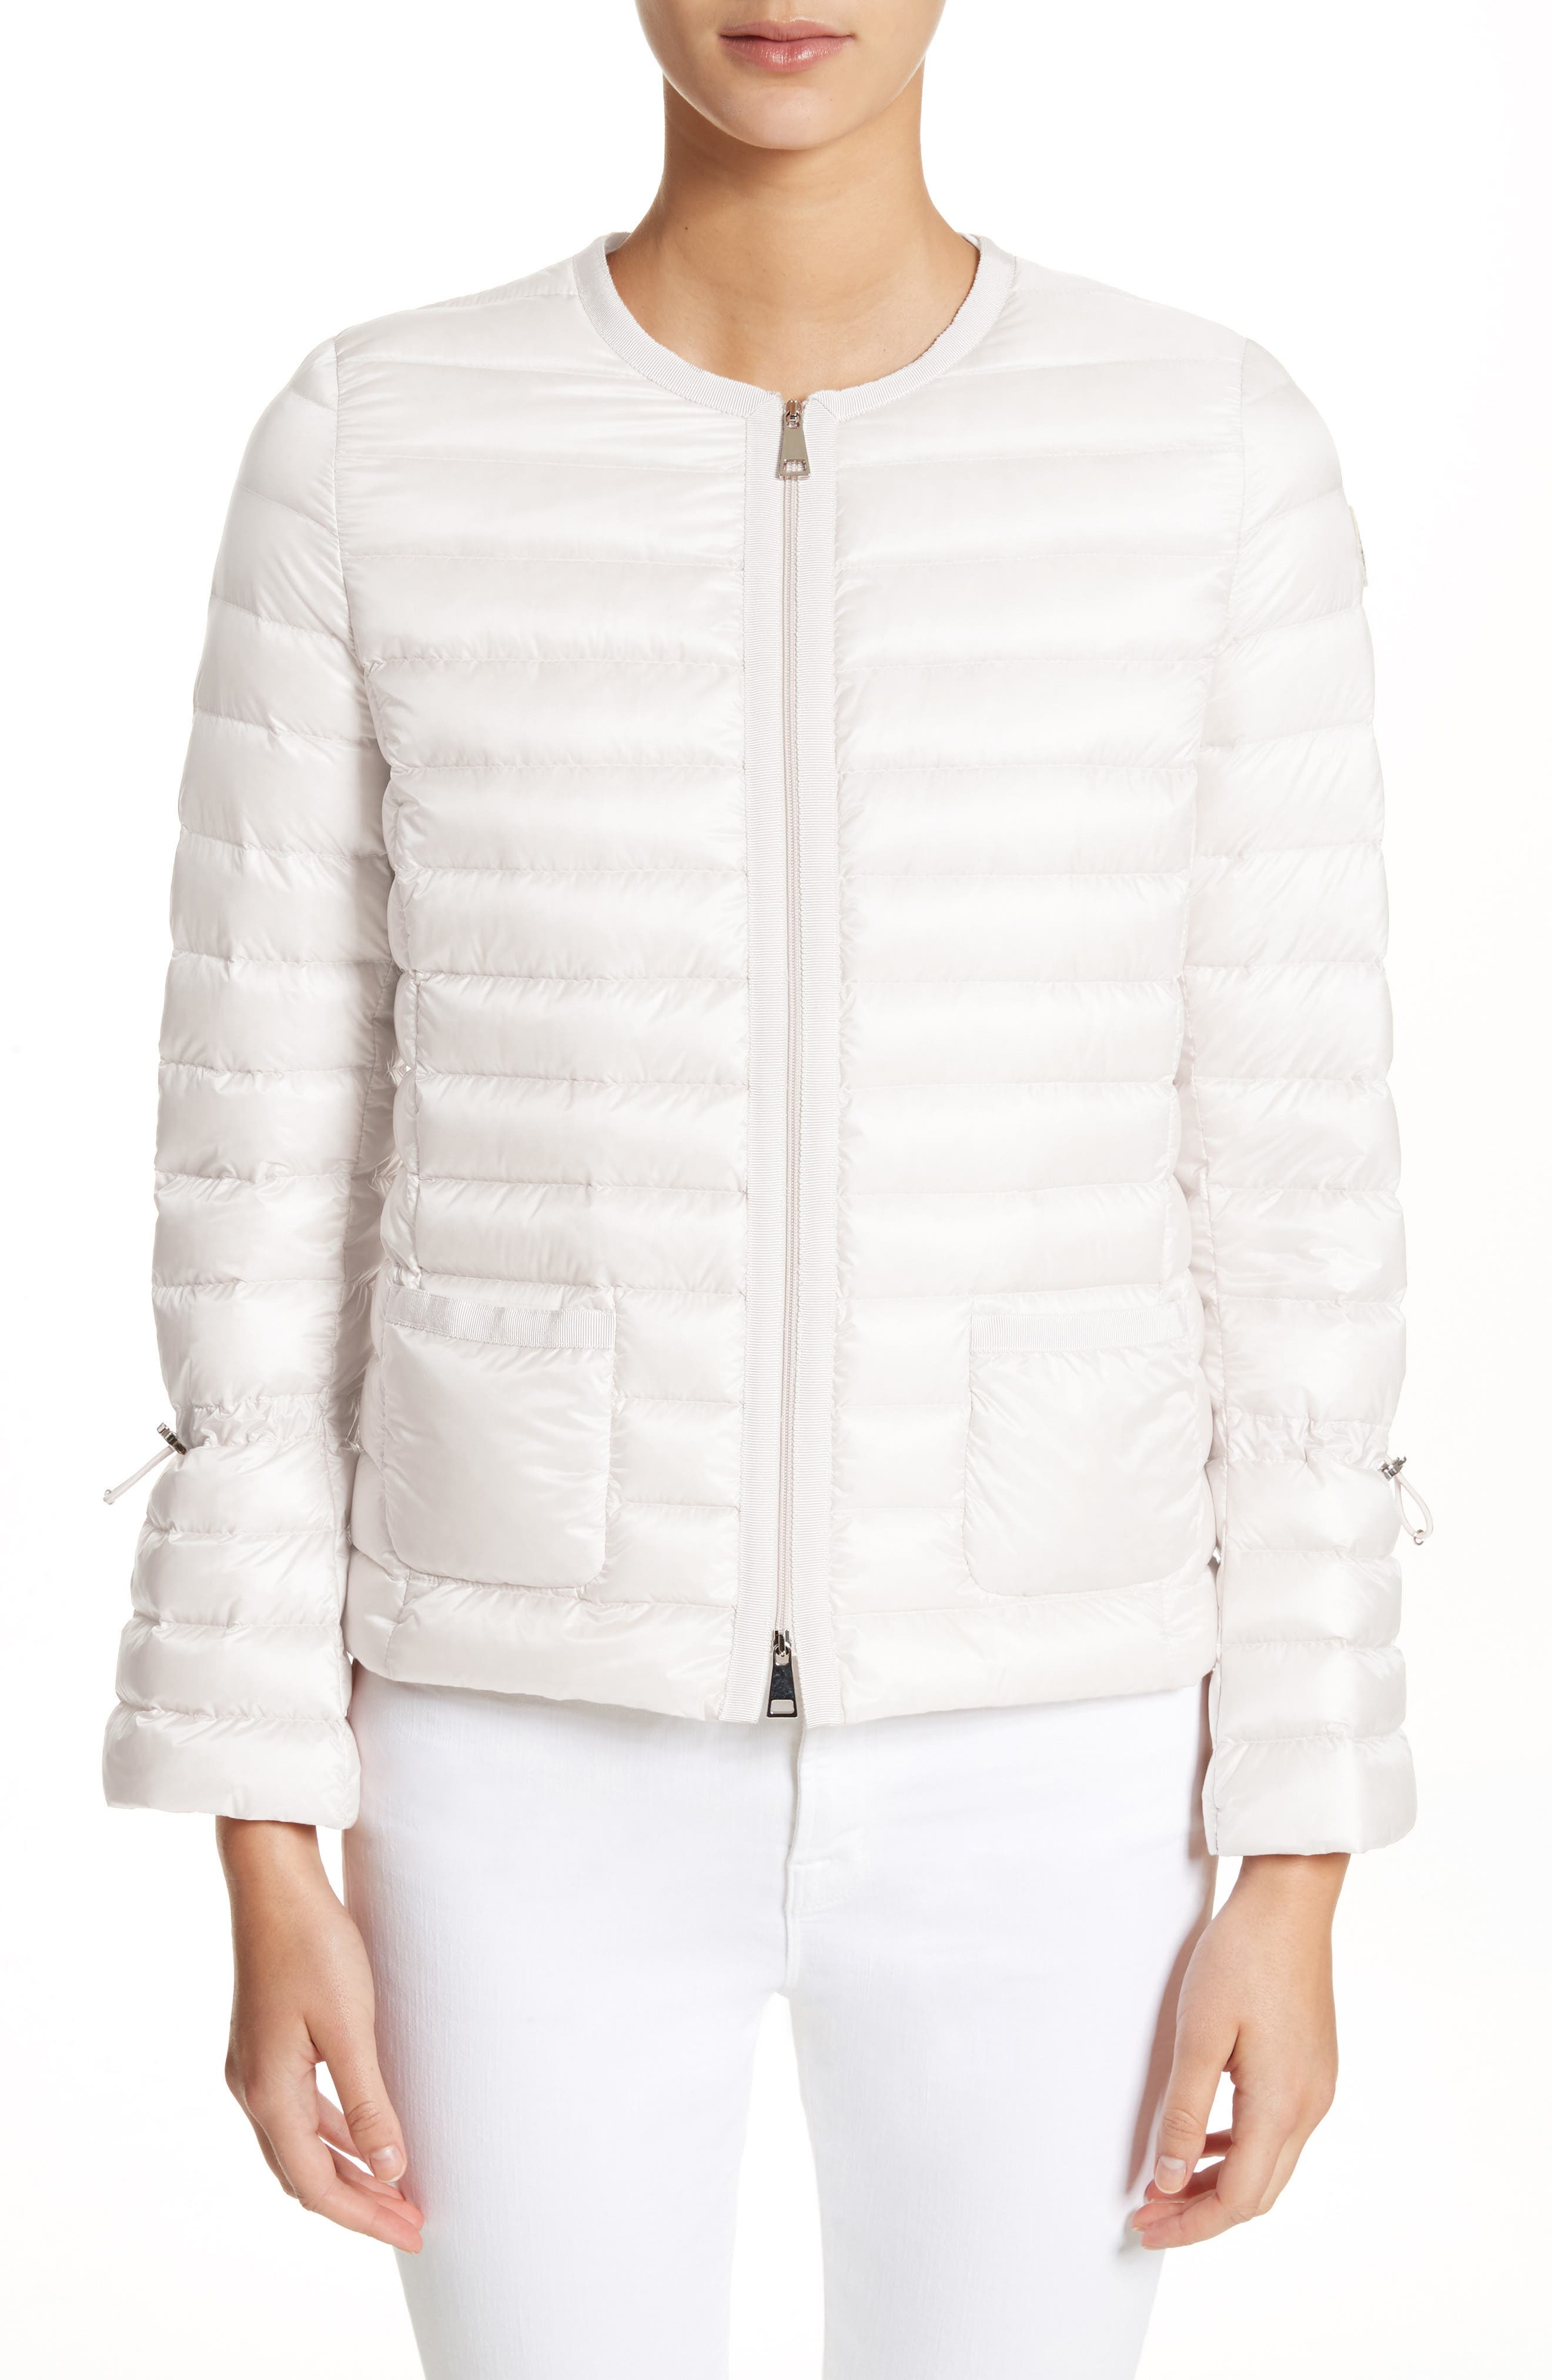 Almandin Quilted Puffer Jacket,                             Main thumbnail 1, color,                             101